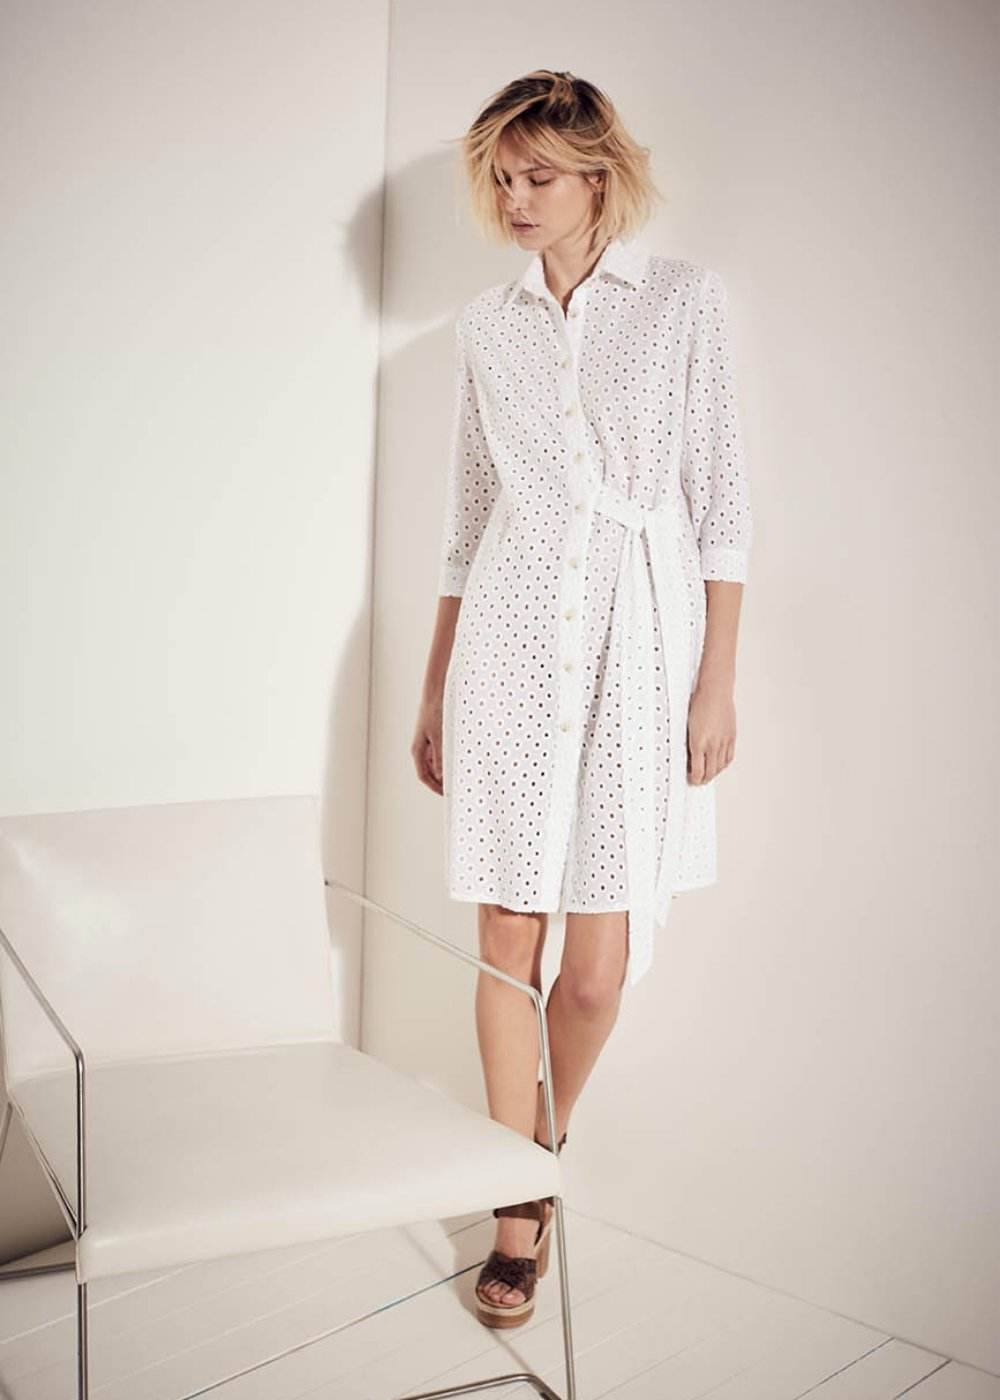 Carrie crossed shirt dress - White - Woman